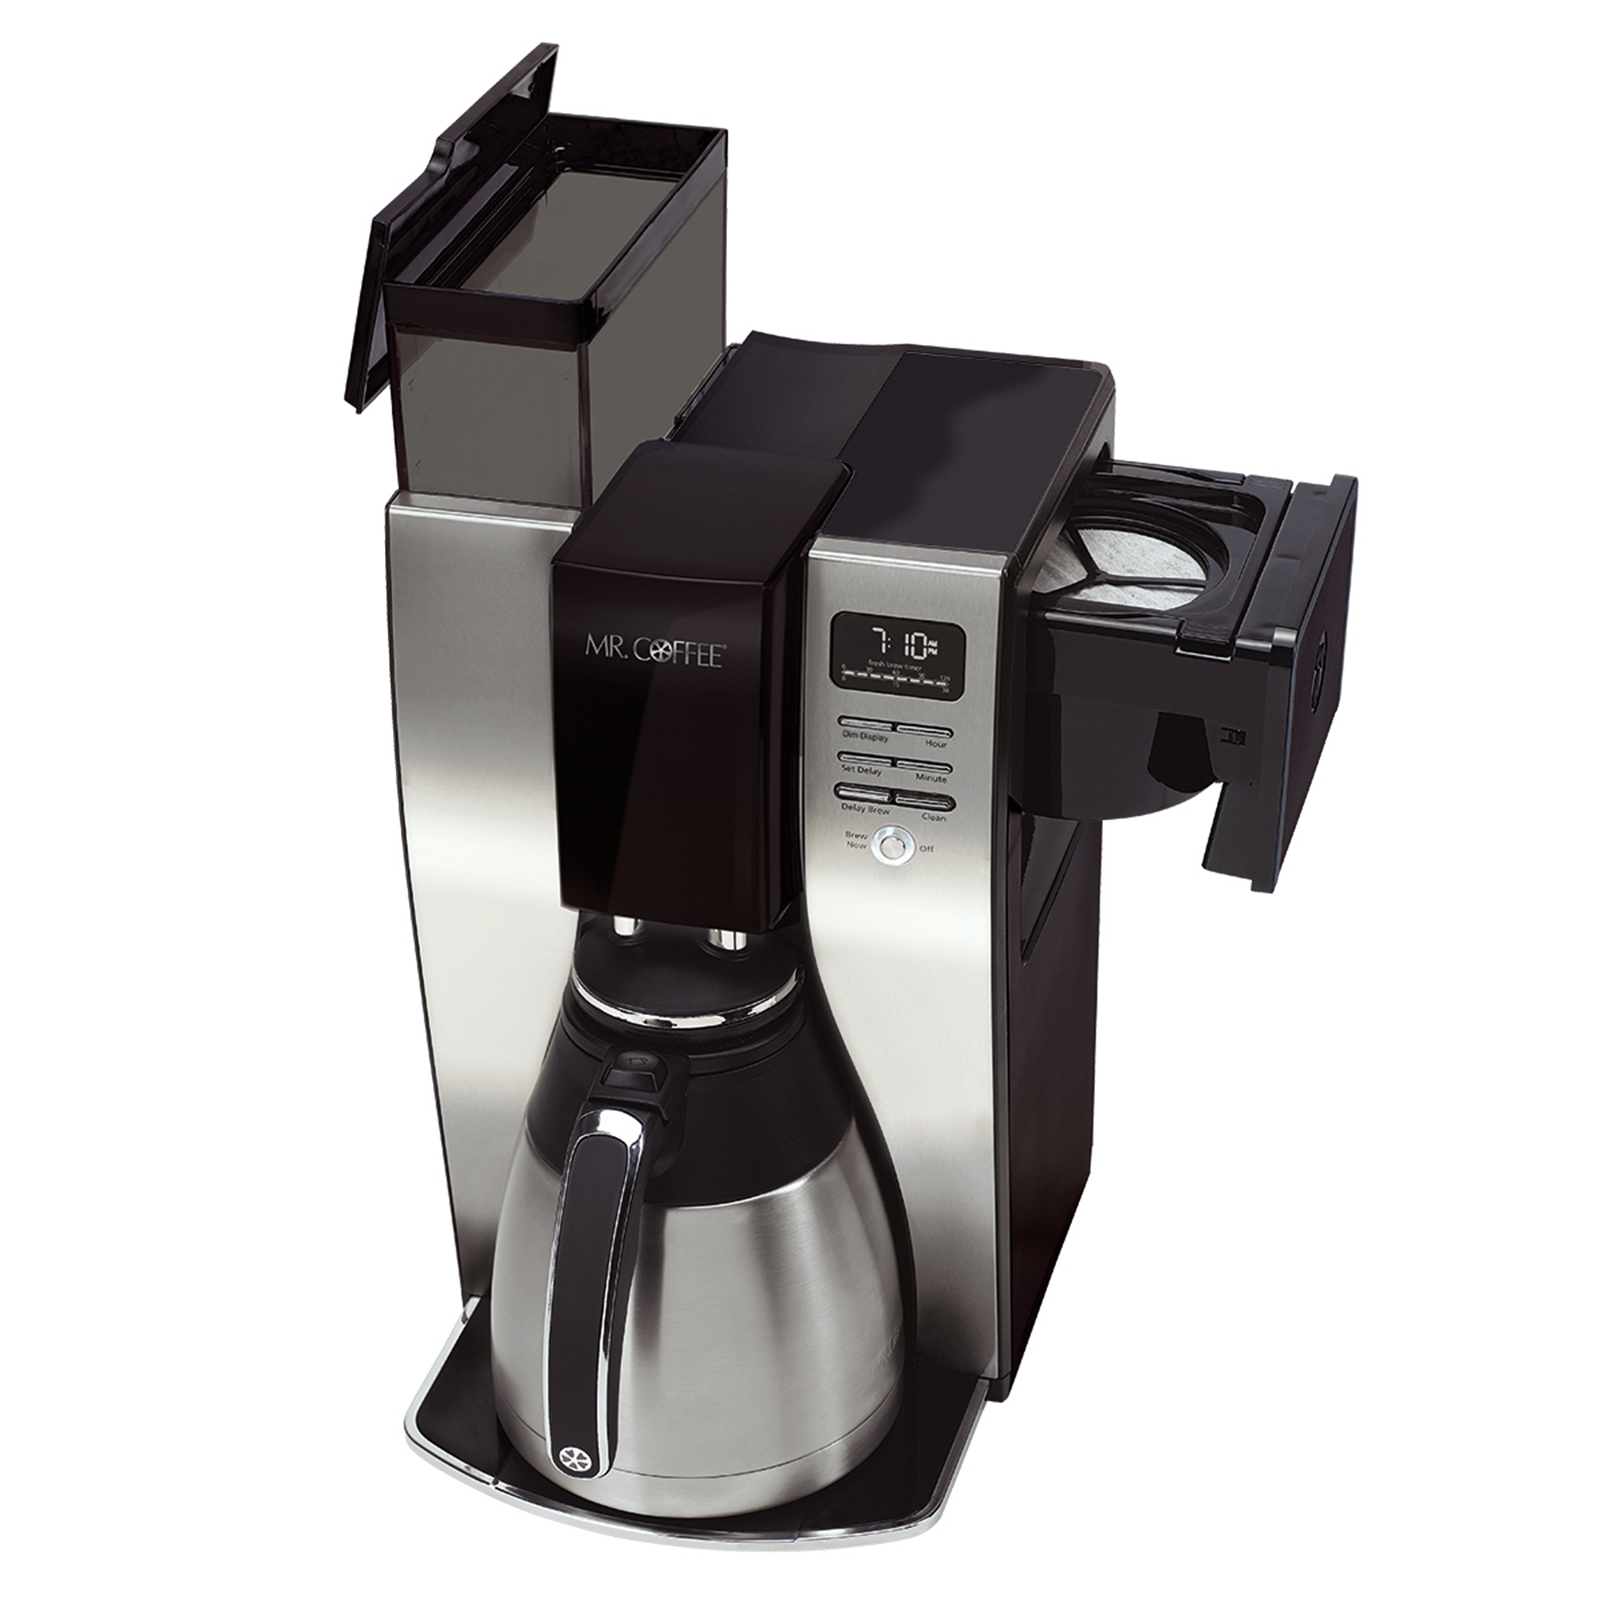 Mr. Coffee 10-Cup Optimal Brew Thermal Coffee Maker